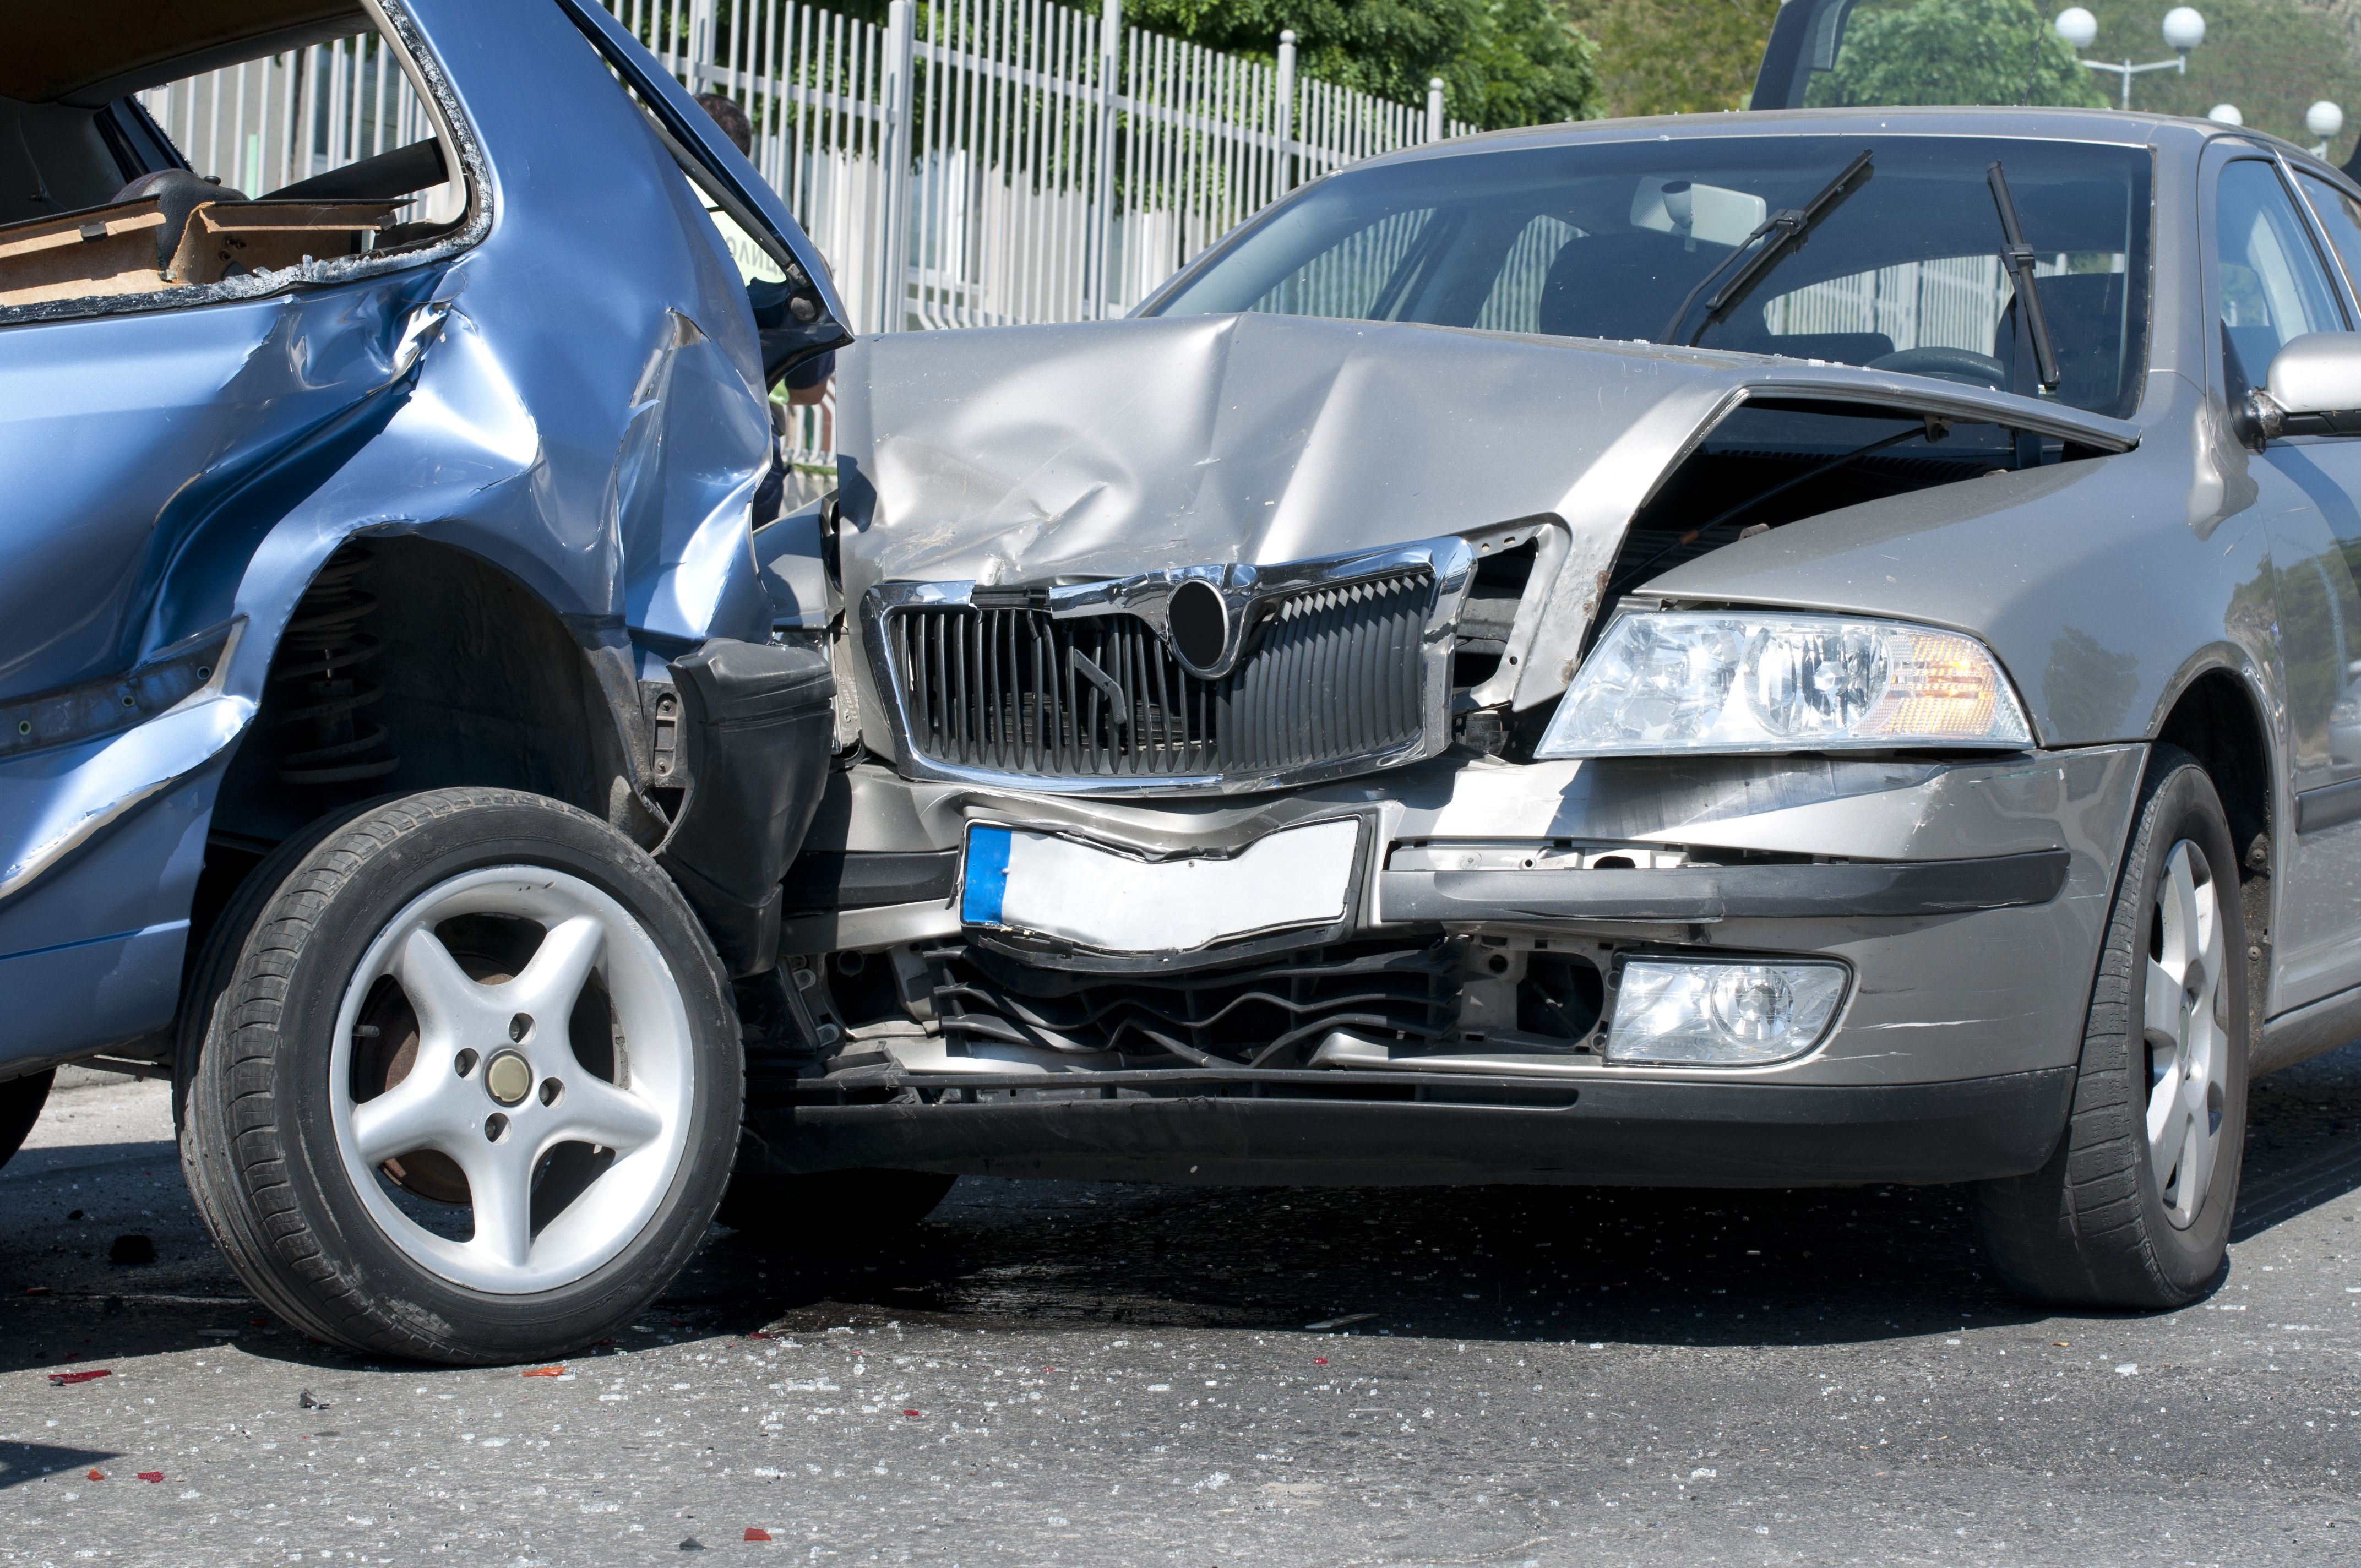 Vehicle Accident In New York City Call Harmon Linder Rogowsky To Represent You Car Accident Injuries Car